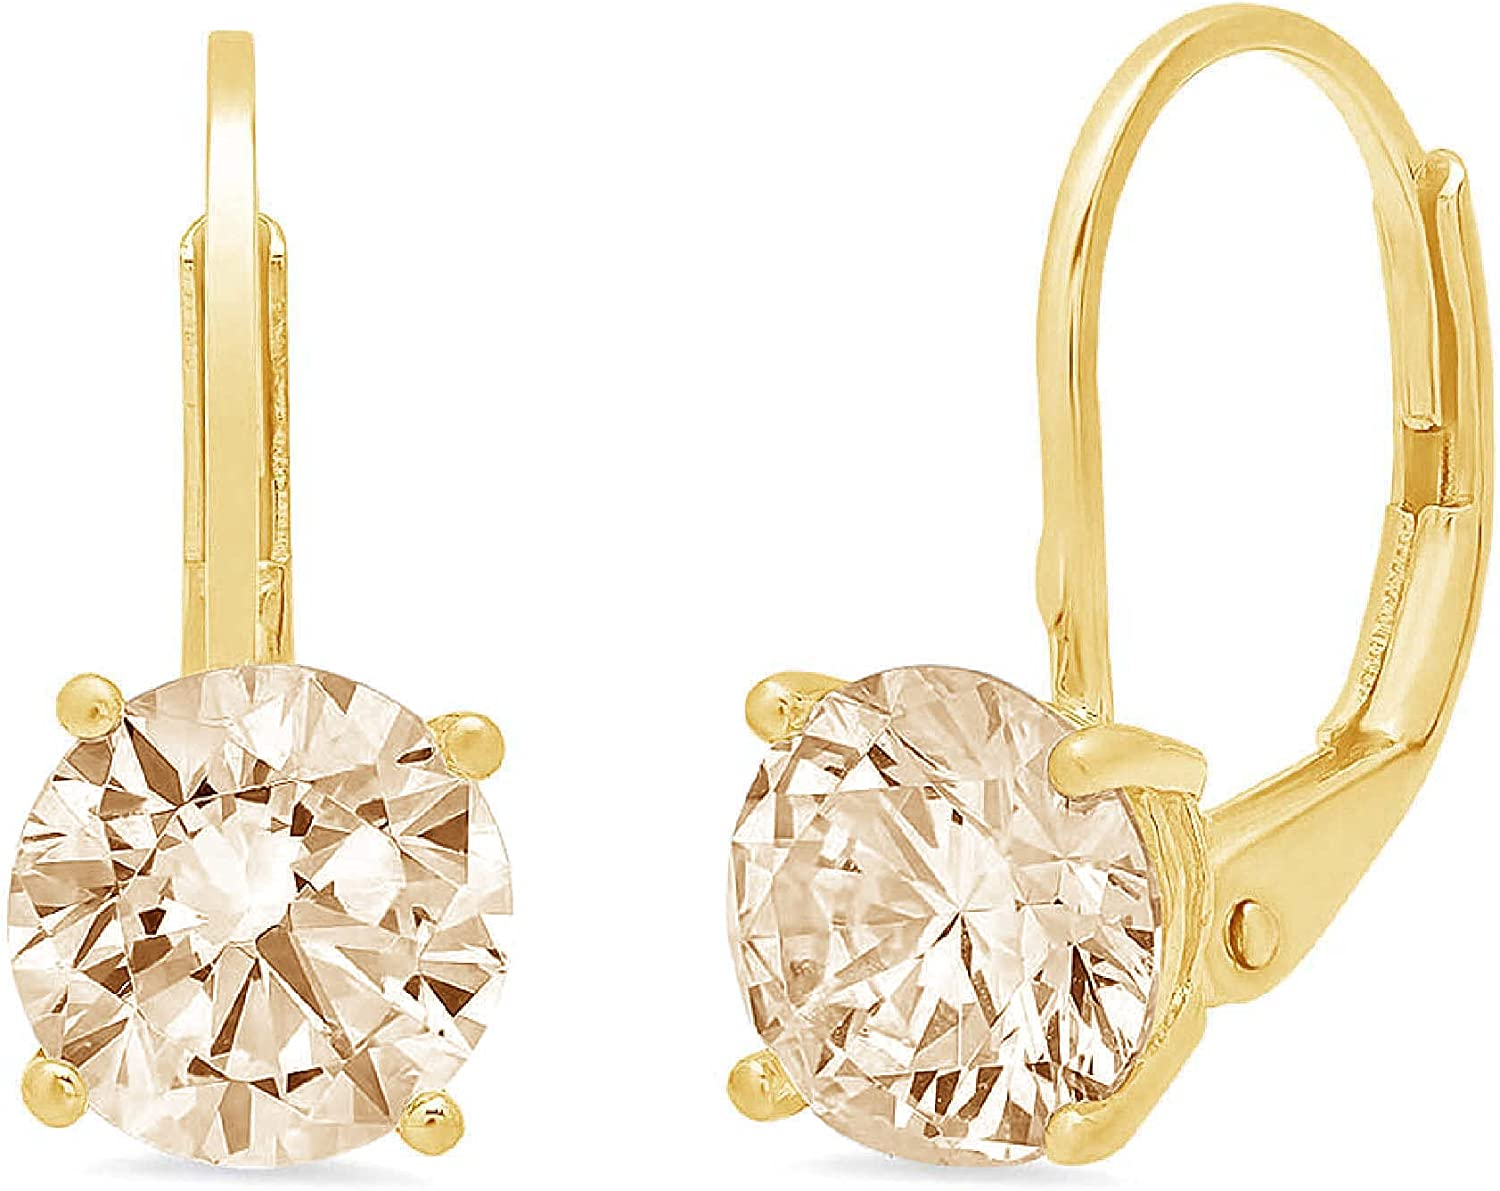 0.94cttw Brilliant Round Cut Solitaire Flawless Genuine Yellow Moissanite Gemstone Unisex Pair of Designer Lever back Drop Dangle Earrings Solid 14k Yellow Gold